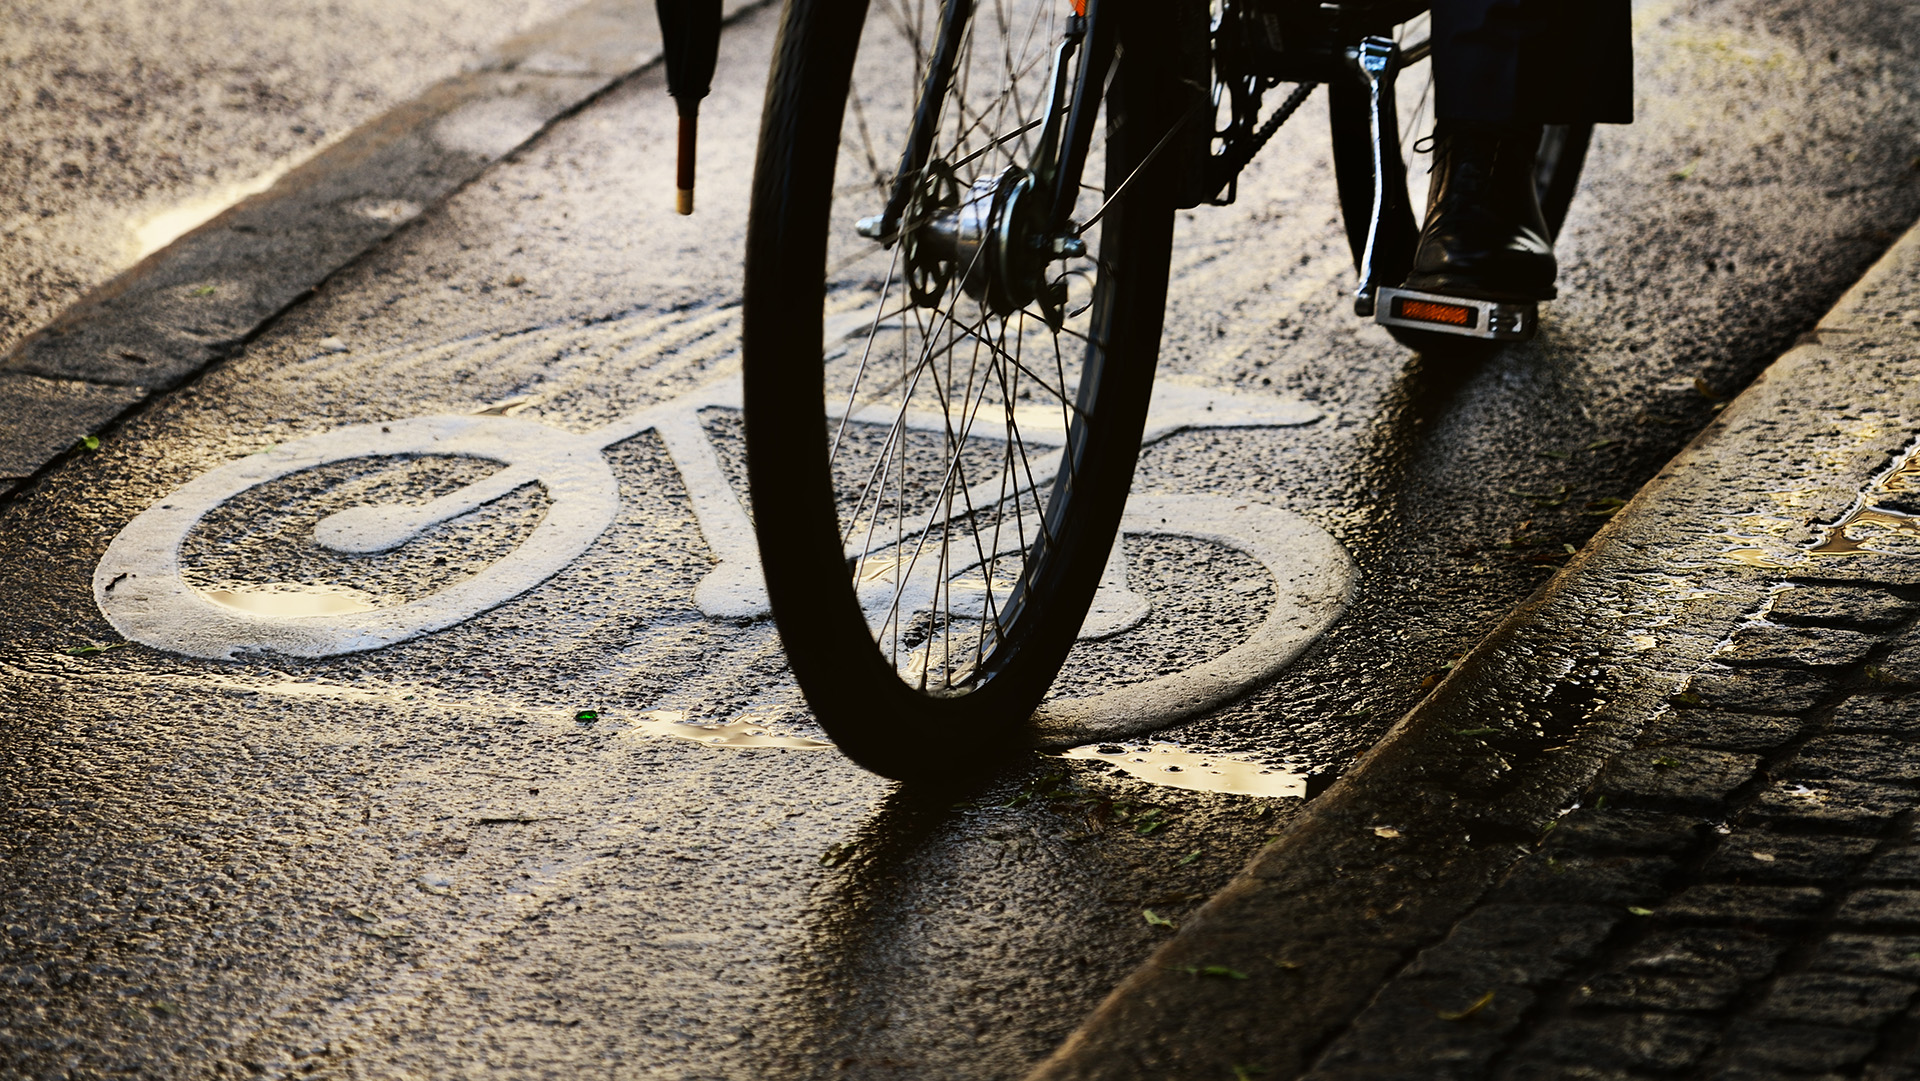 Bike lane on a rainy day. Sign for bicycle painted on the asphalt.